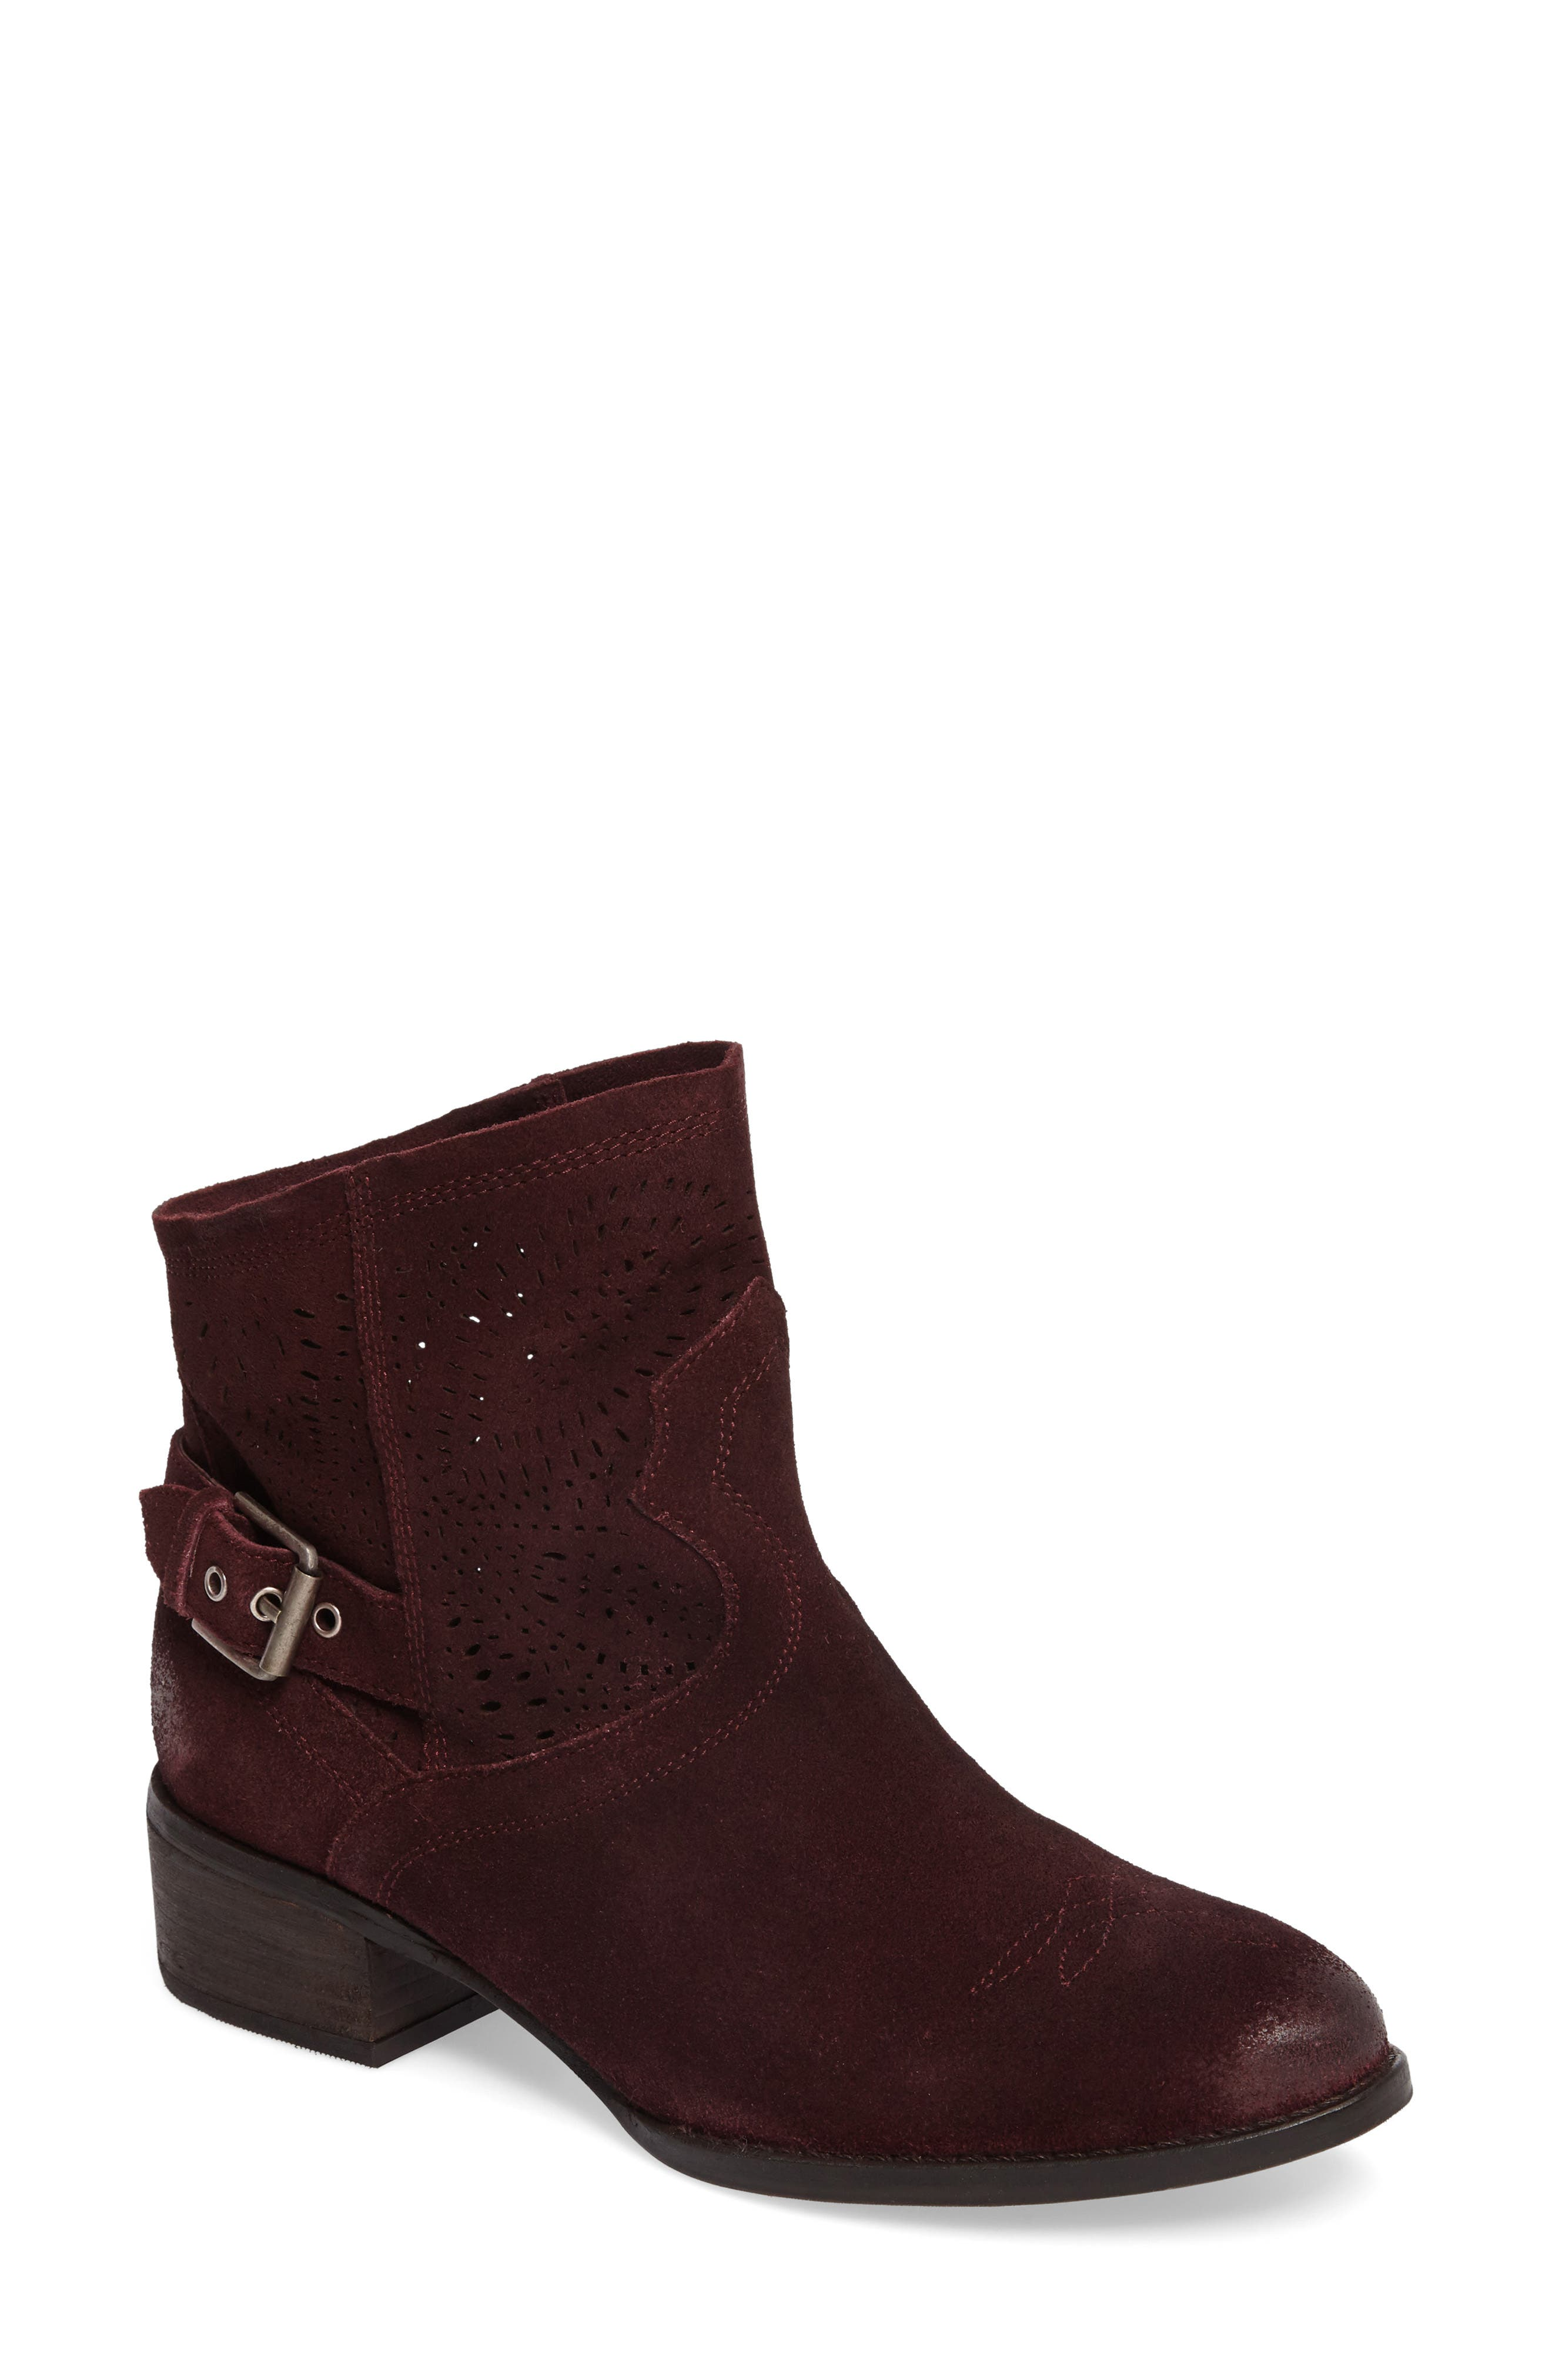 Zoey Perforated Bootie,                             Main thumbnail 4, color,